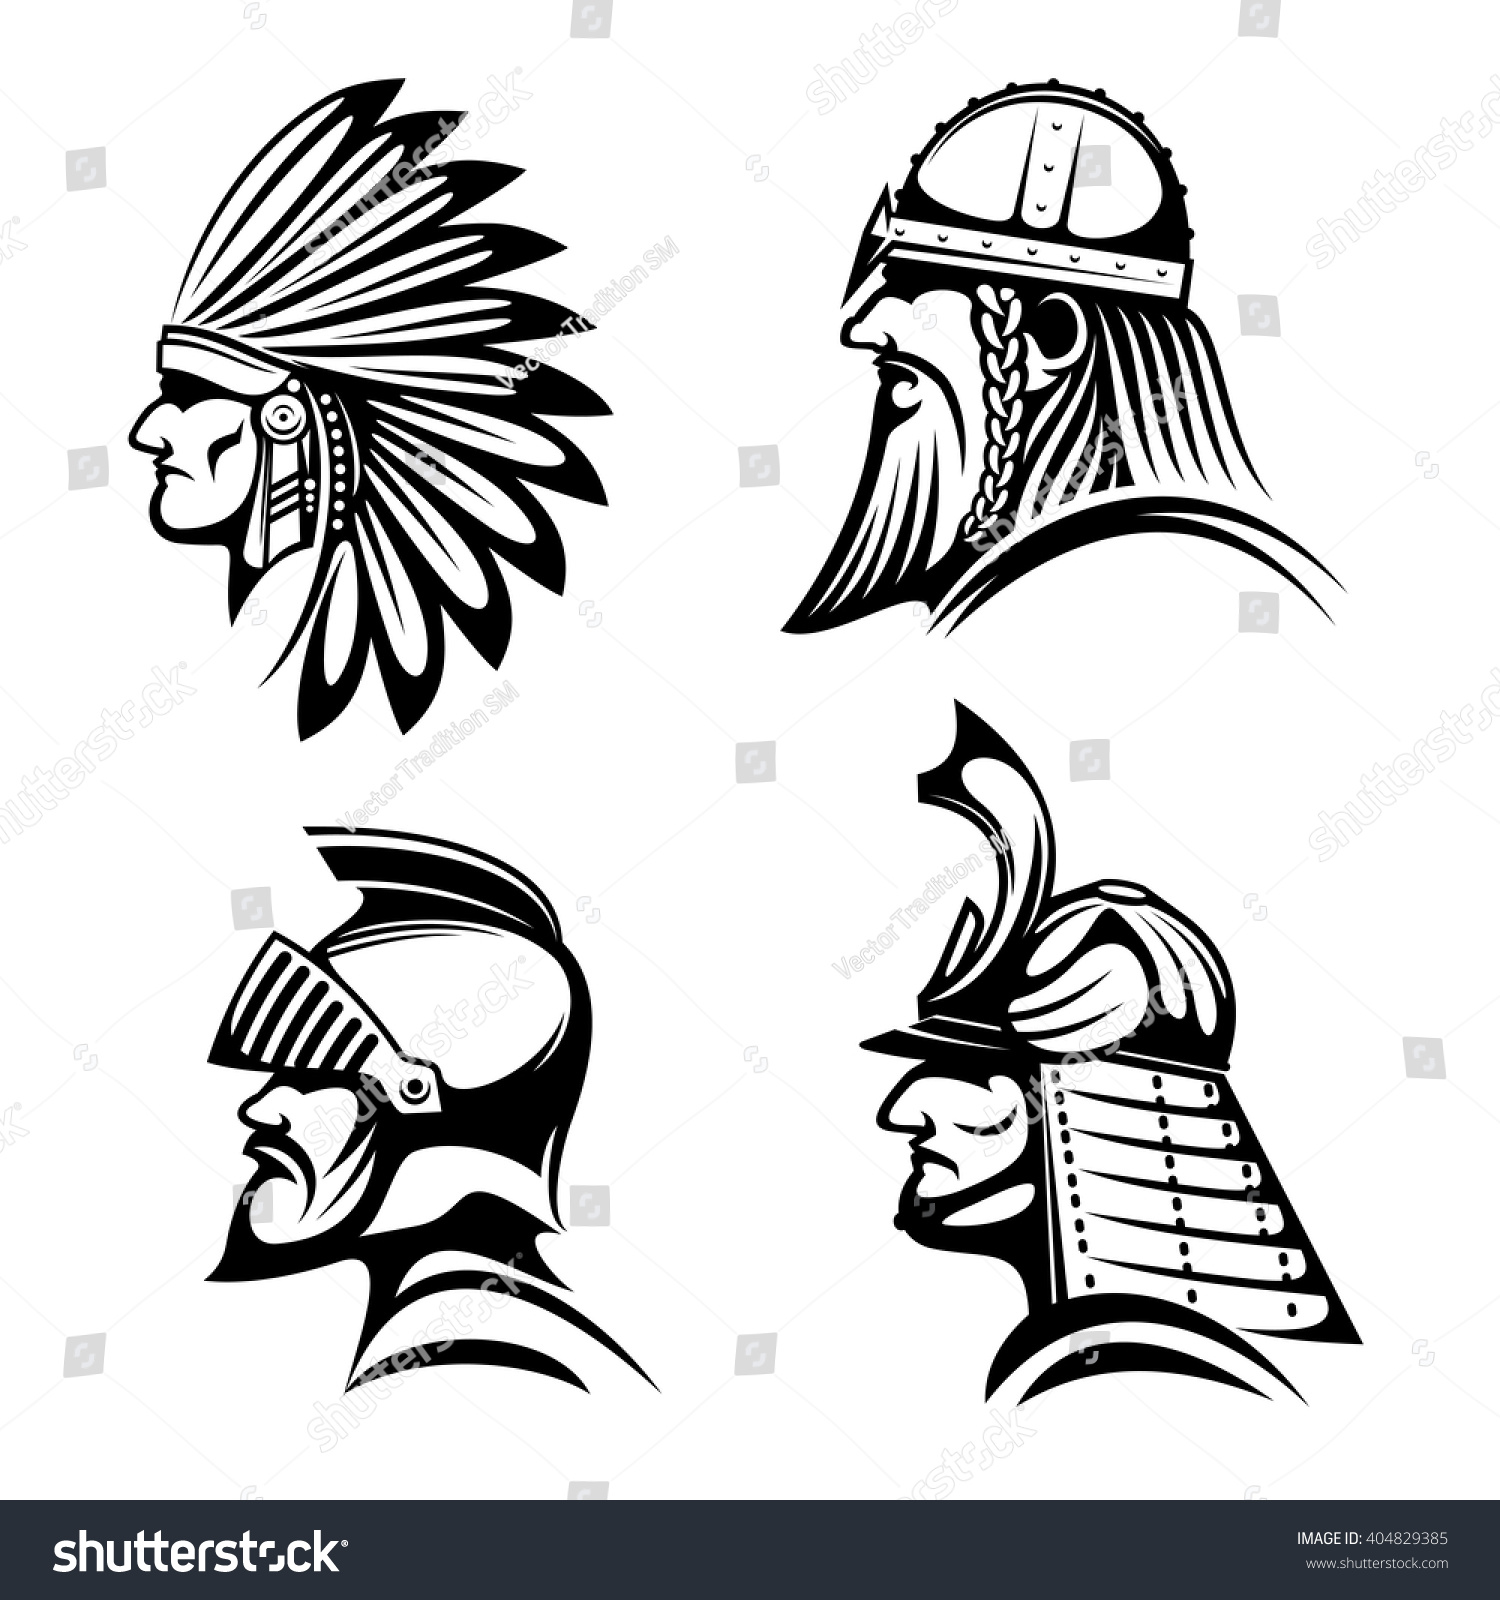 Simple Tattoo Designs To Draw For Men Native American